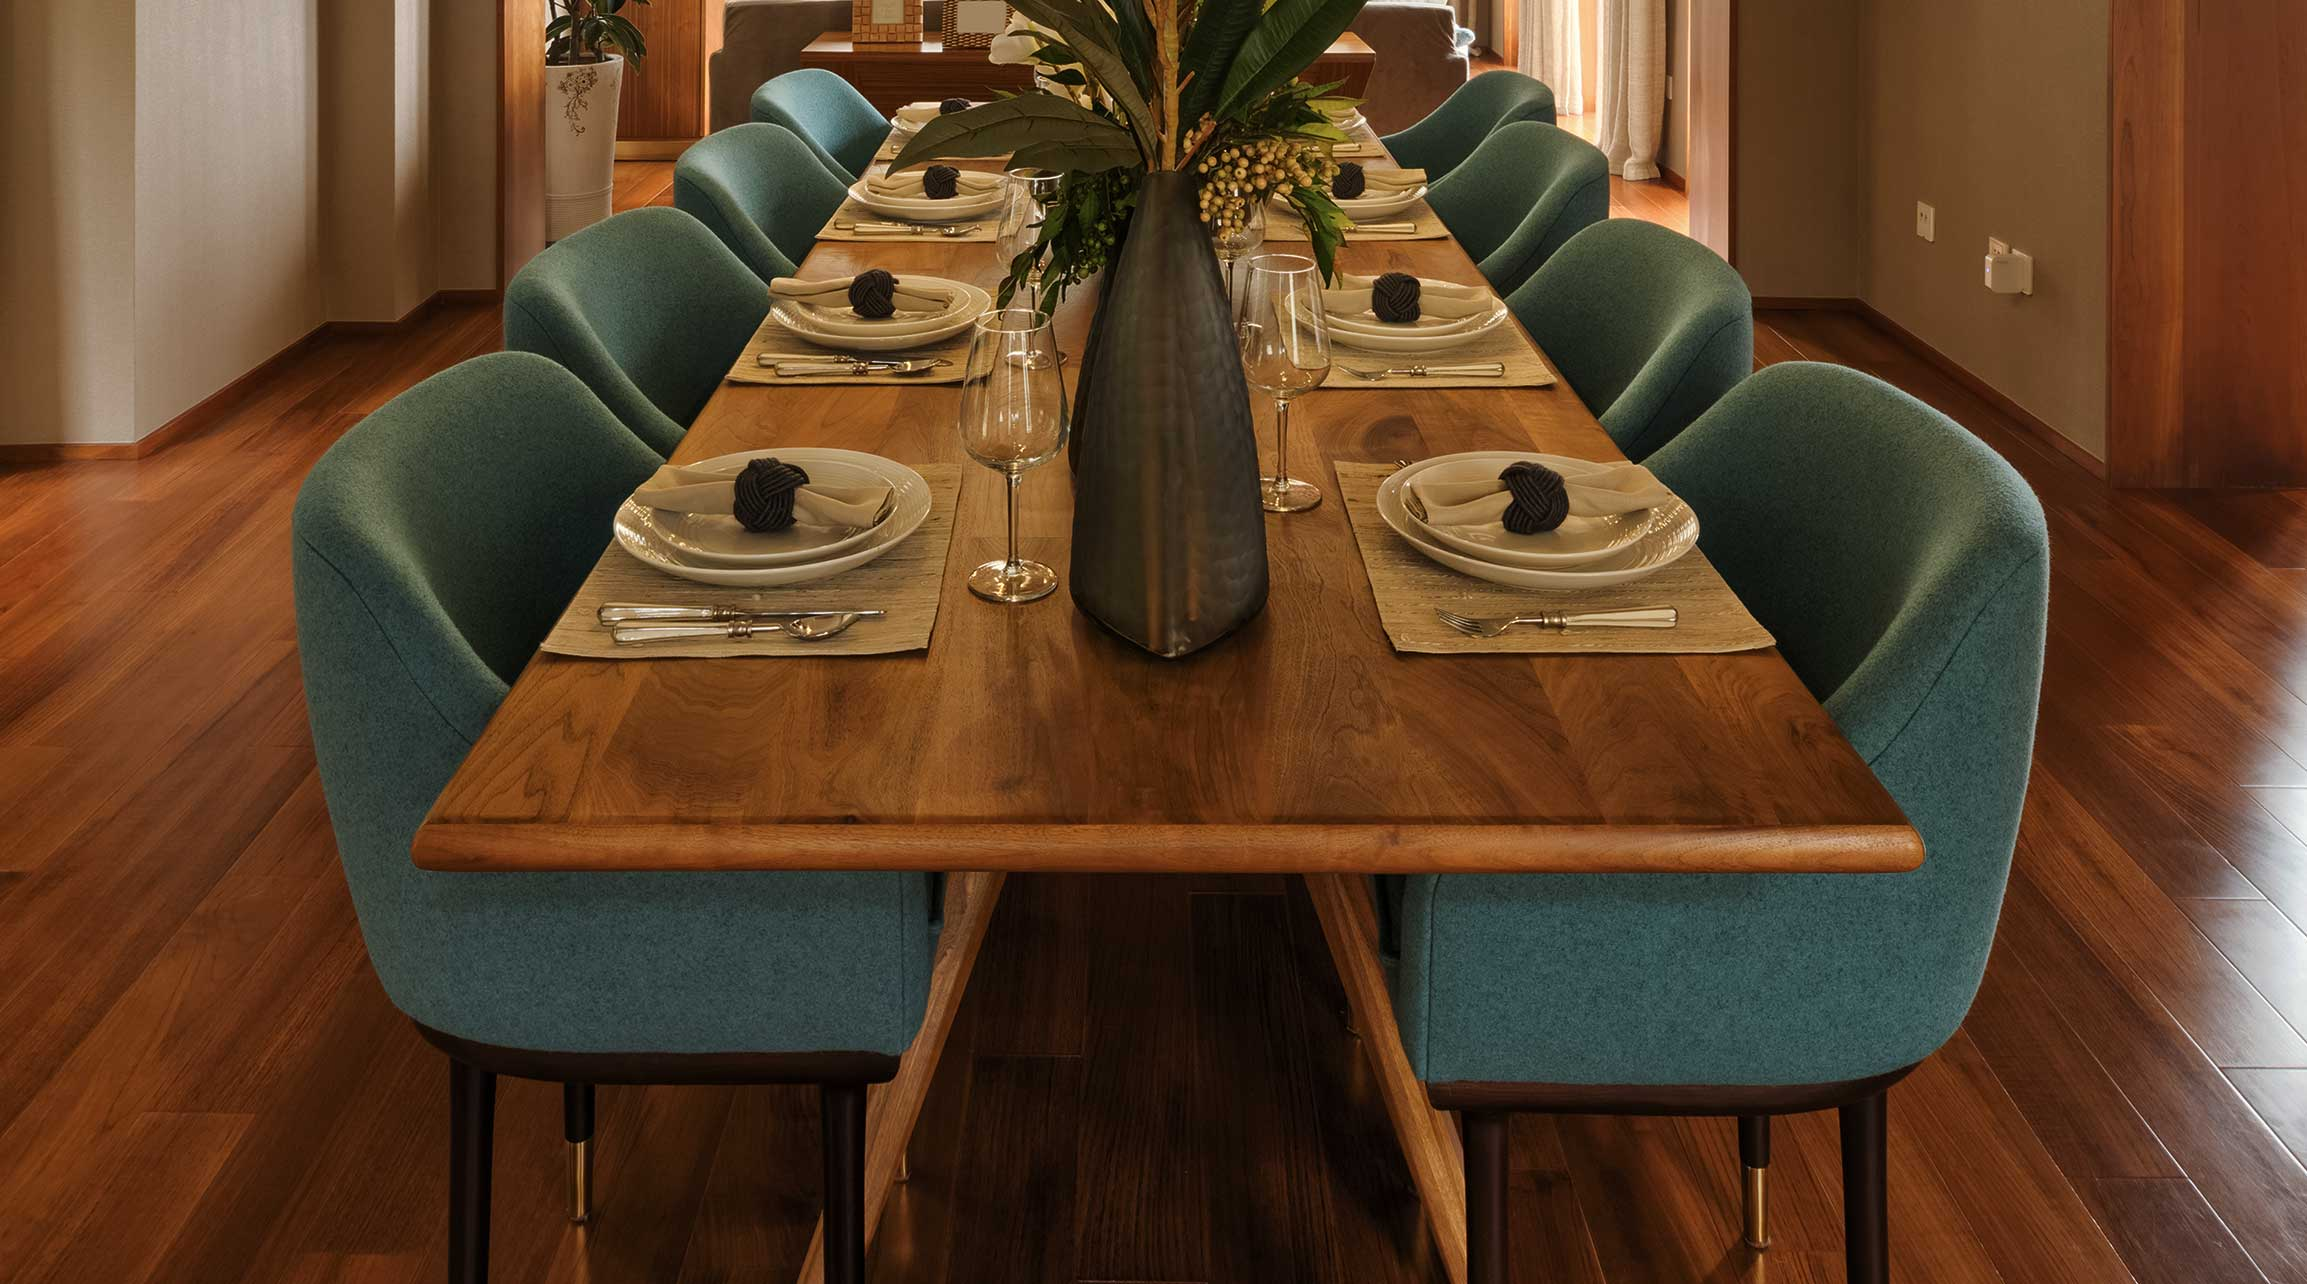 Upholstery Dining Room Furniture